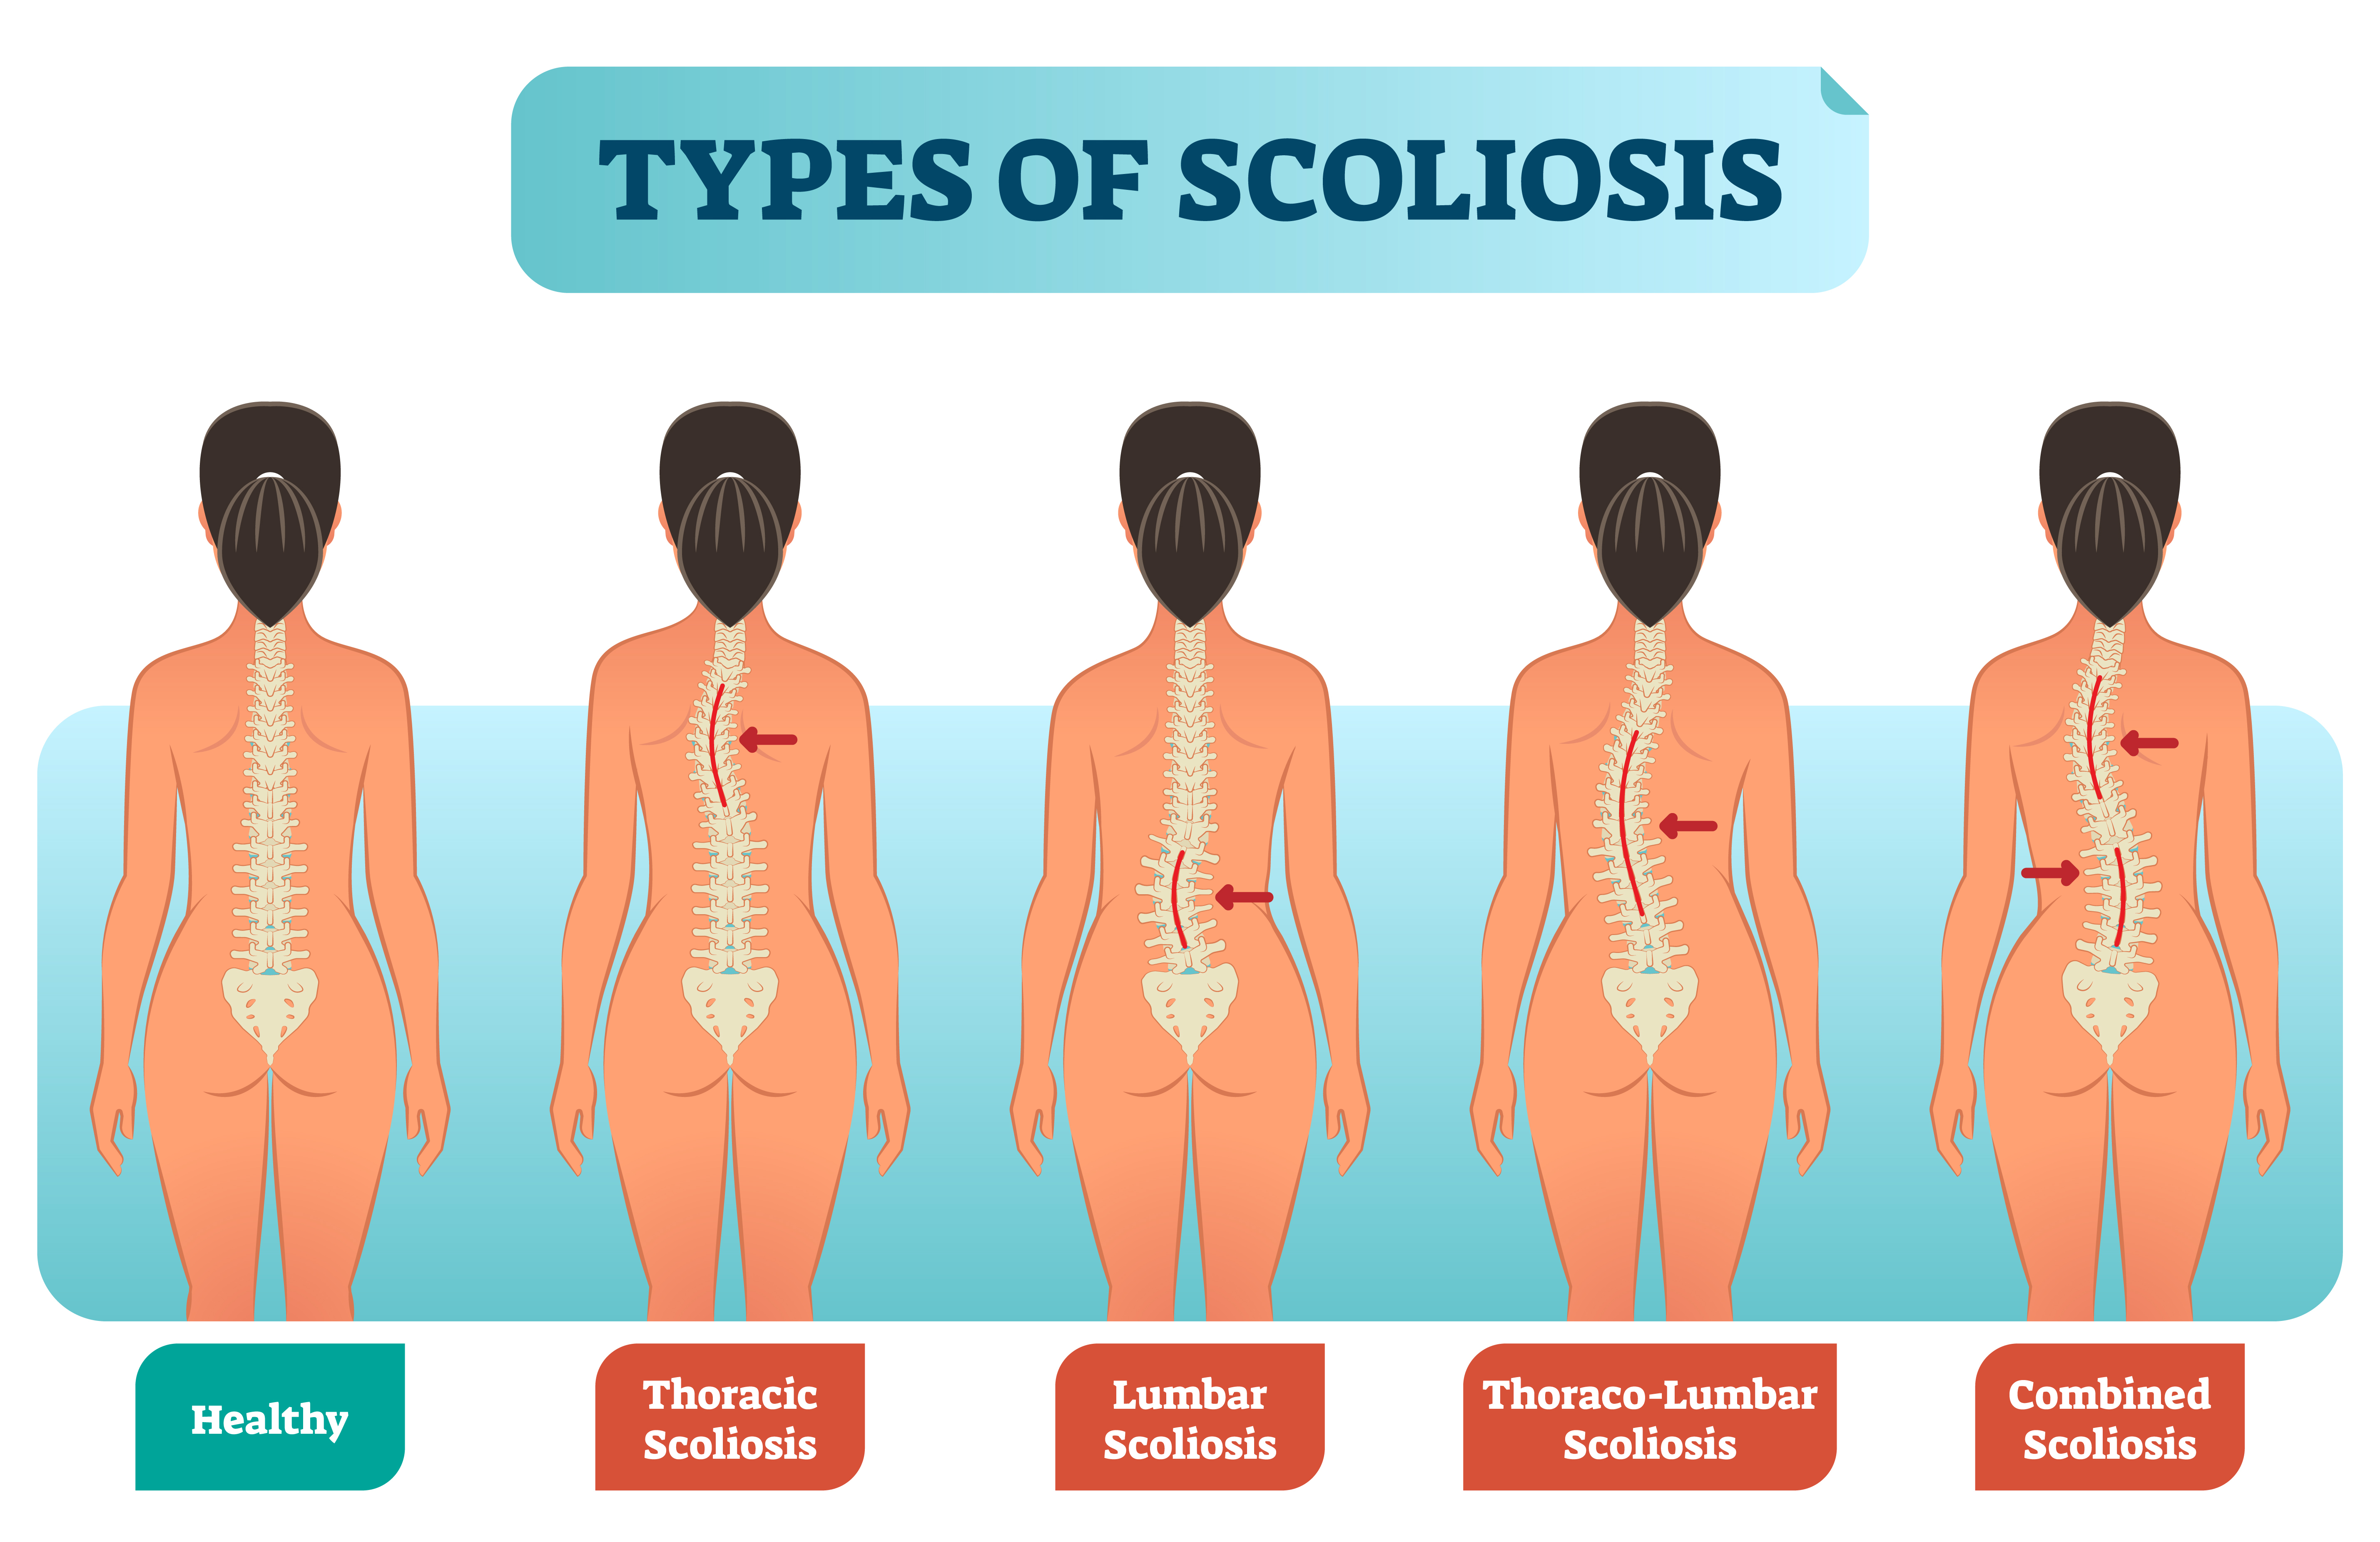 Four types of scoliosis